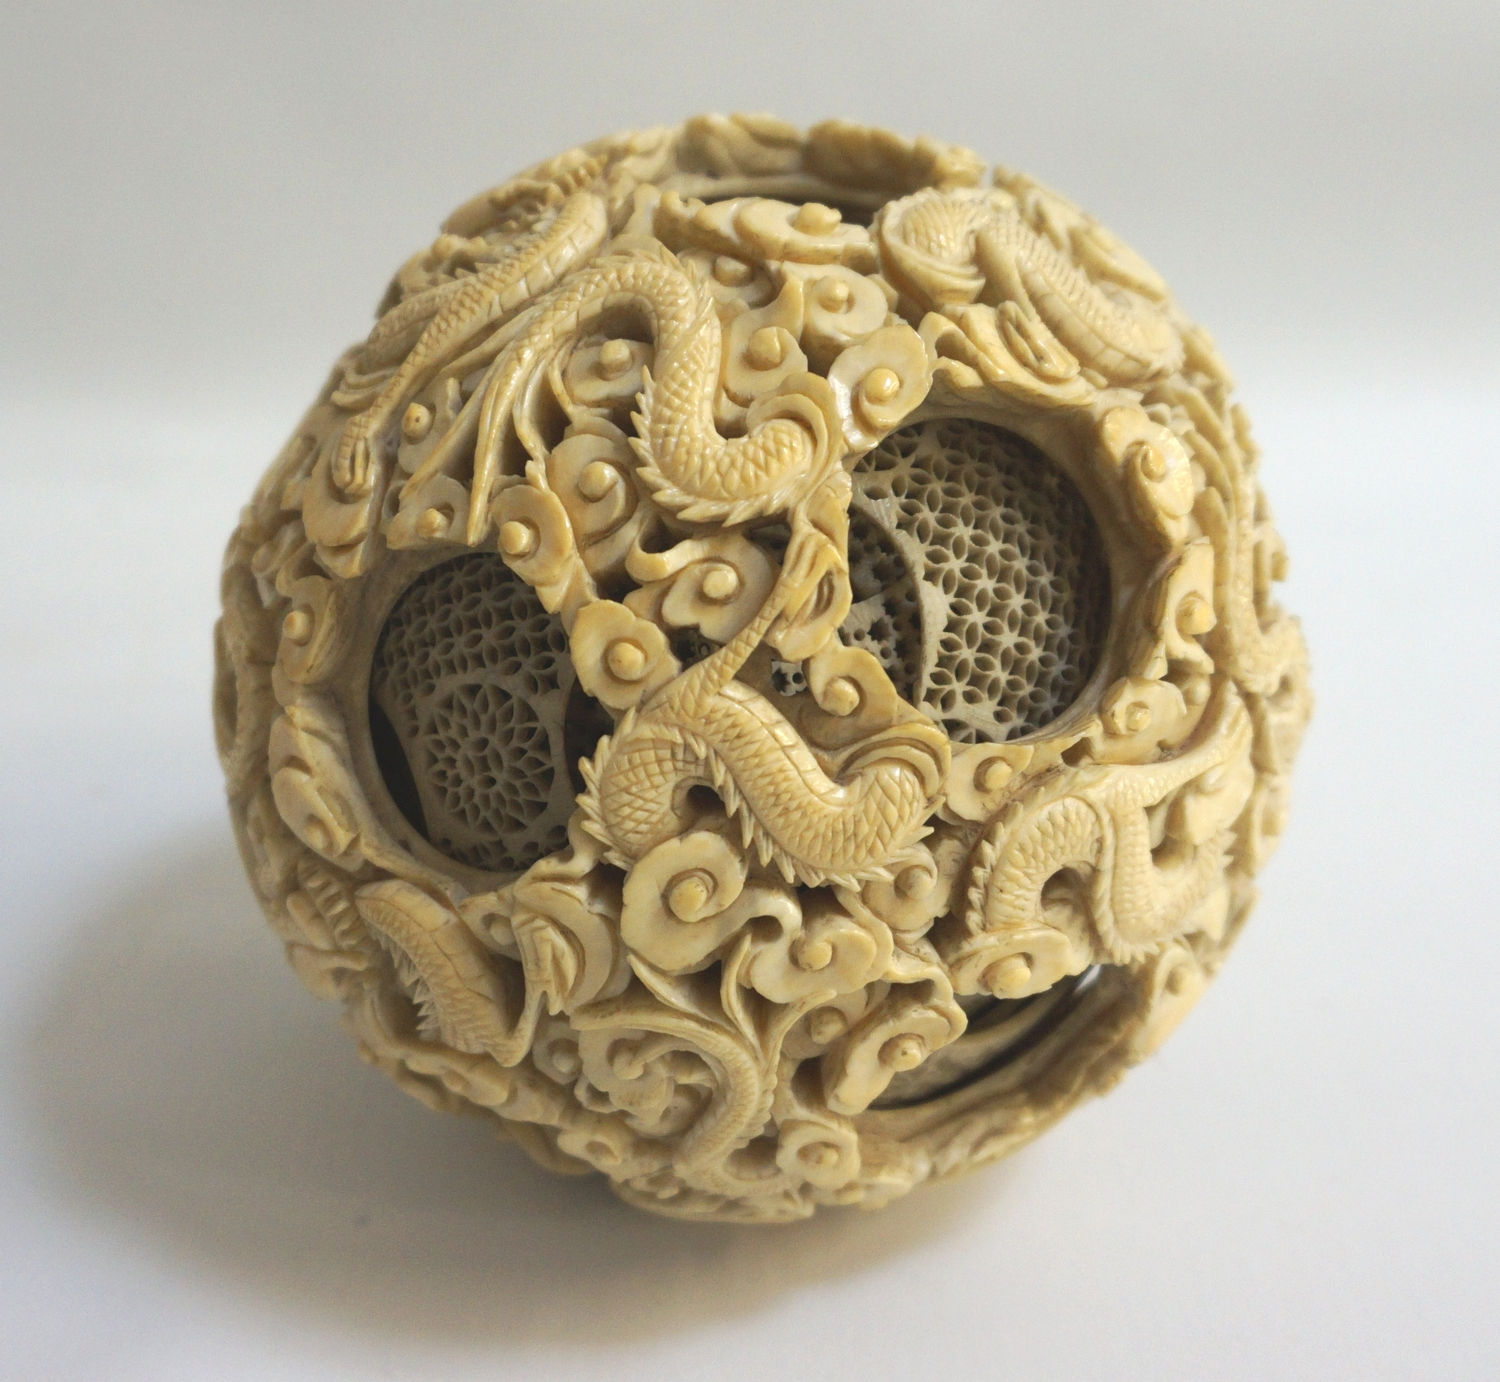 Very Large Chinese Ivory Puzzle Ball With Profuse Carved Dragon Decoration The Interior Spheres Wit